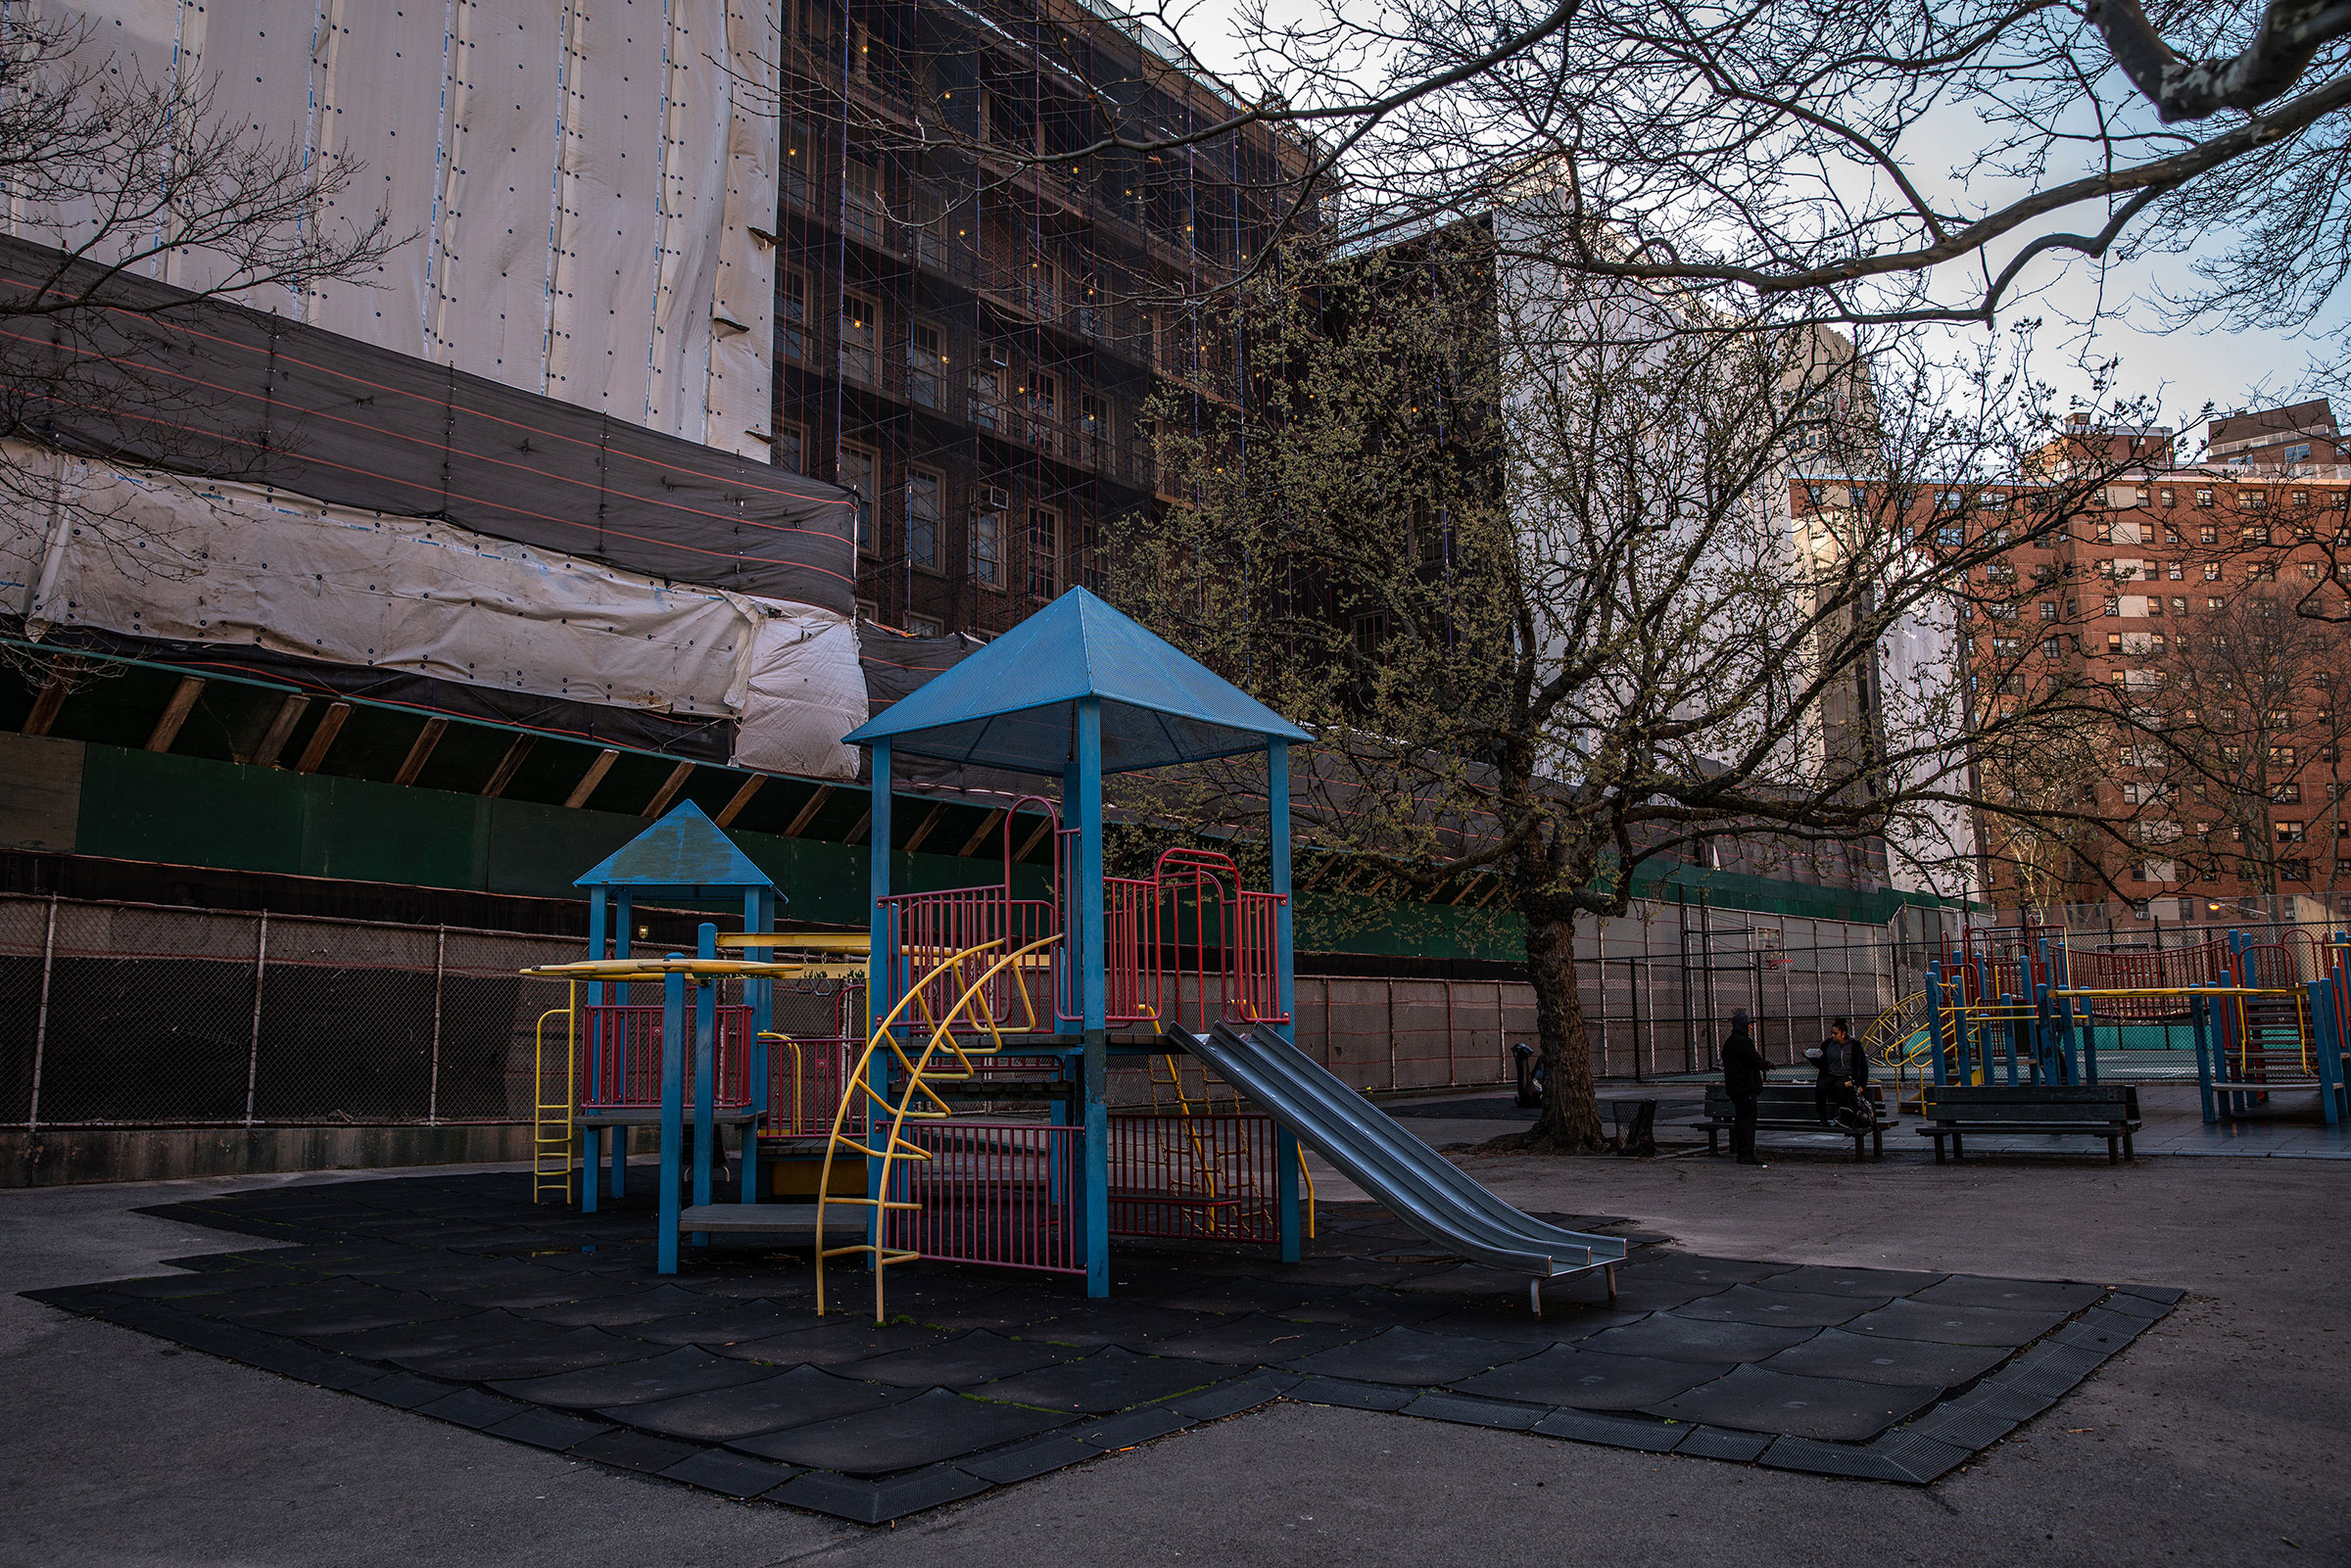 The Harlem Renaissance Training Center's playground remains empty in New York on March 24, 2019.